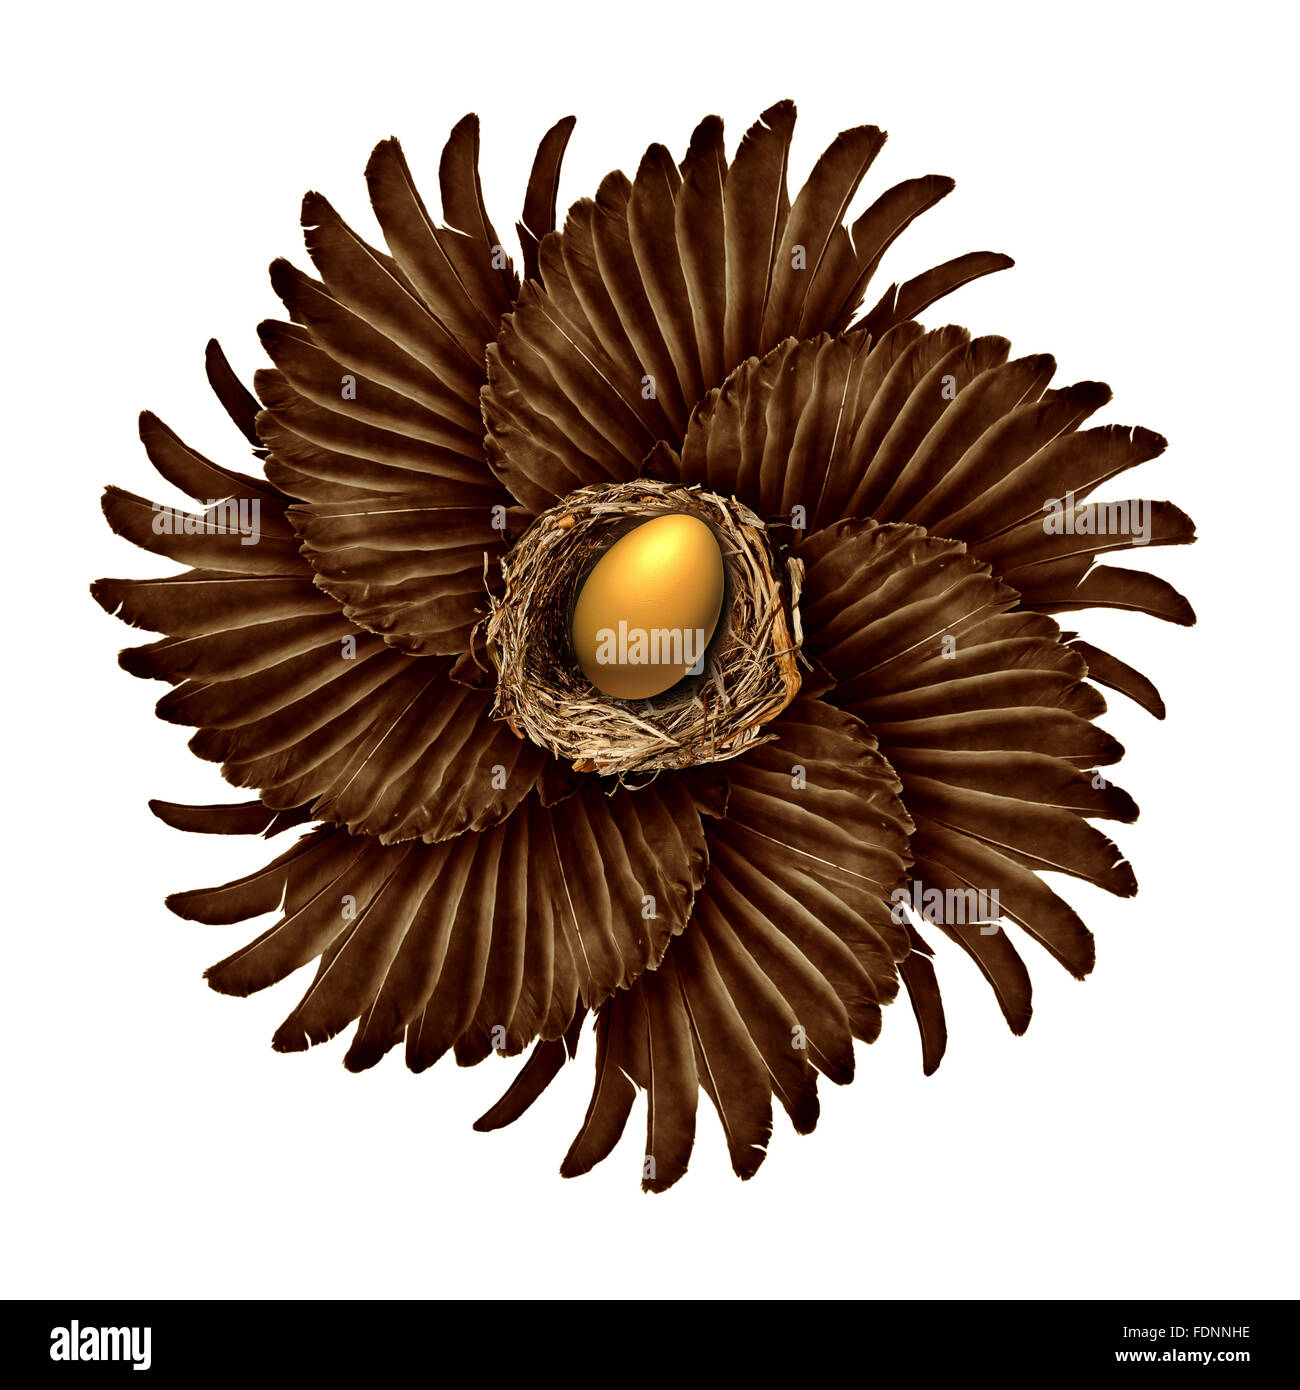 Life and creation concept as a group of bird wings shaped as a blossoming flower with a gold nest egg in the middle - Stock Image